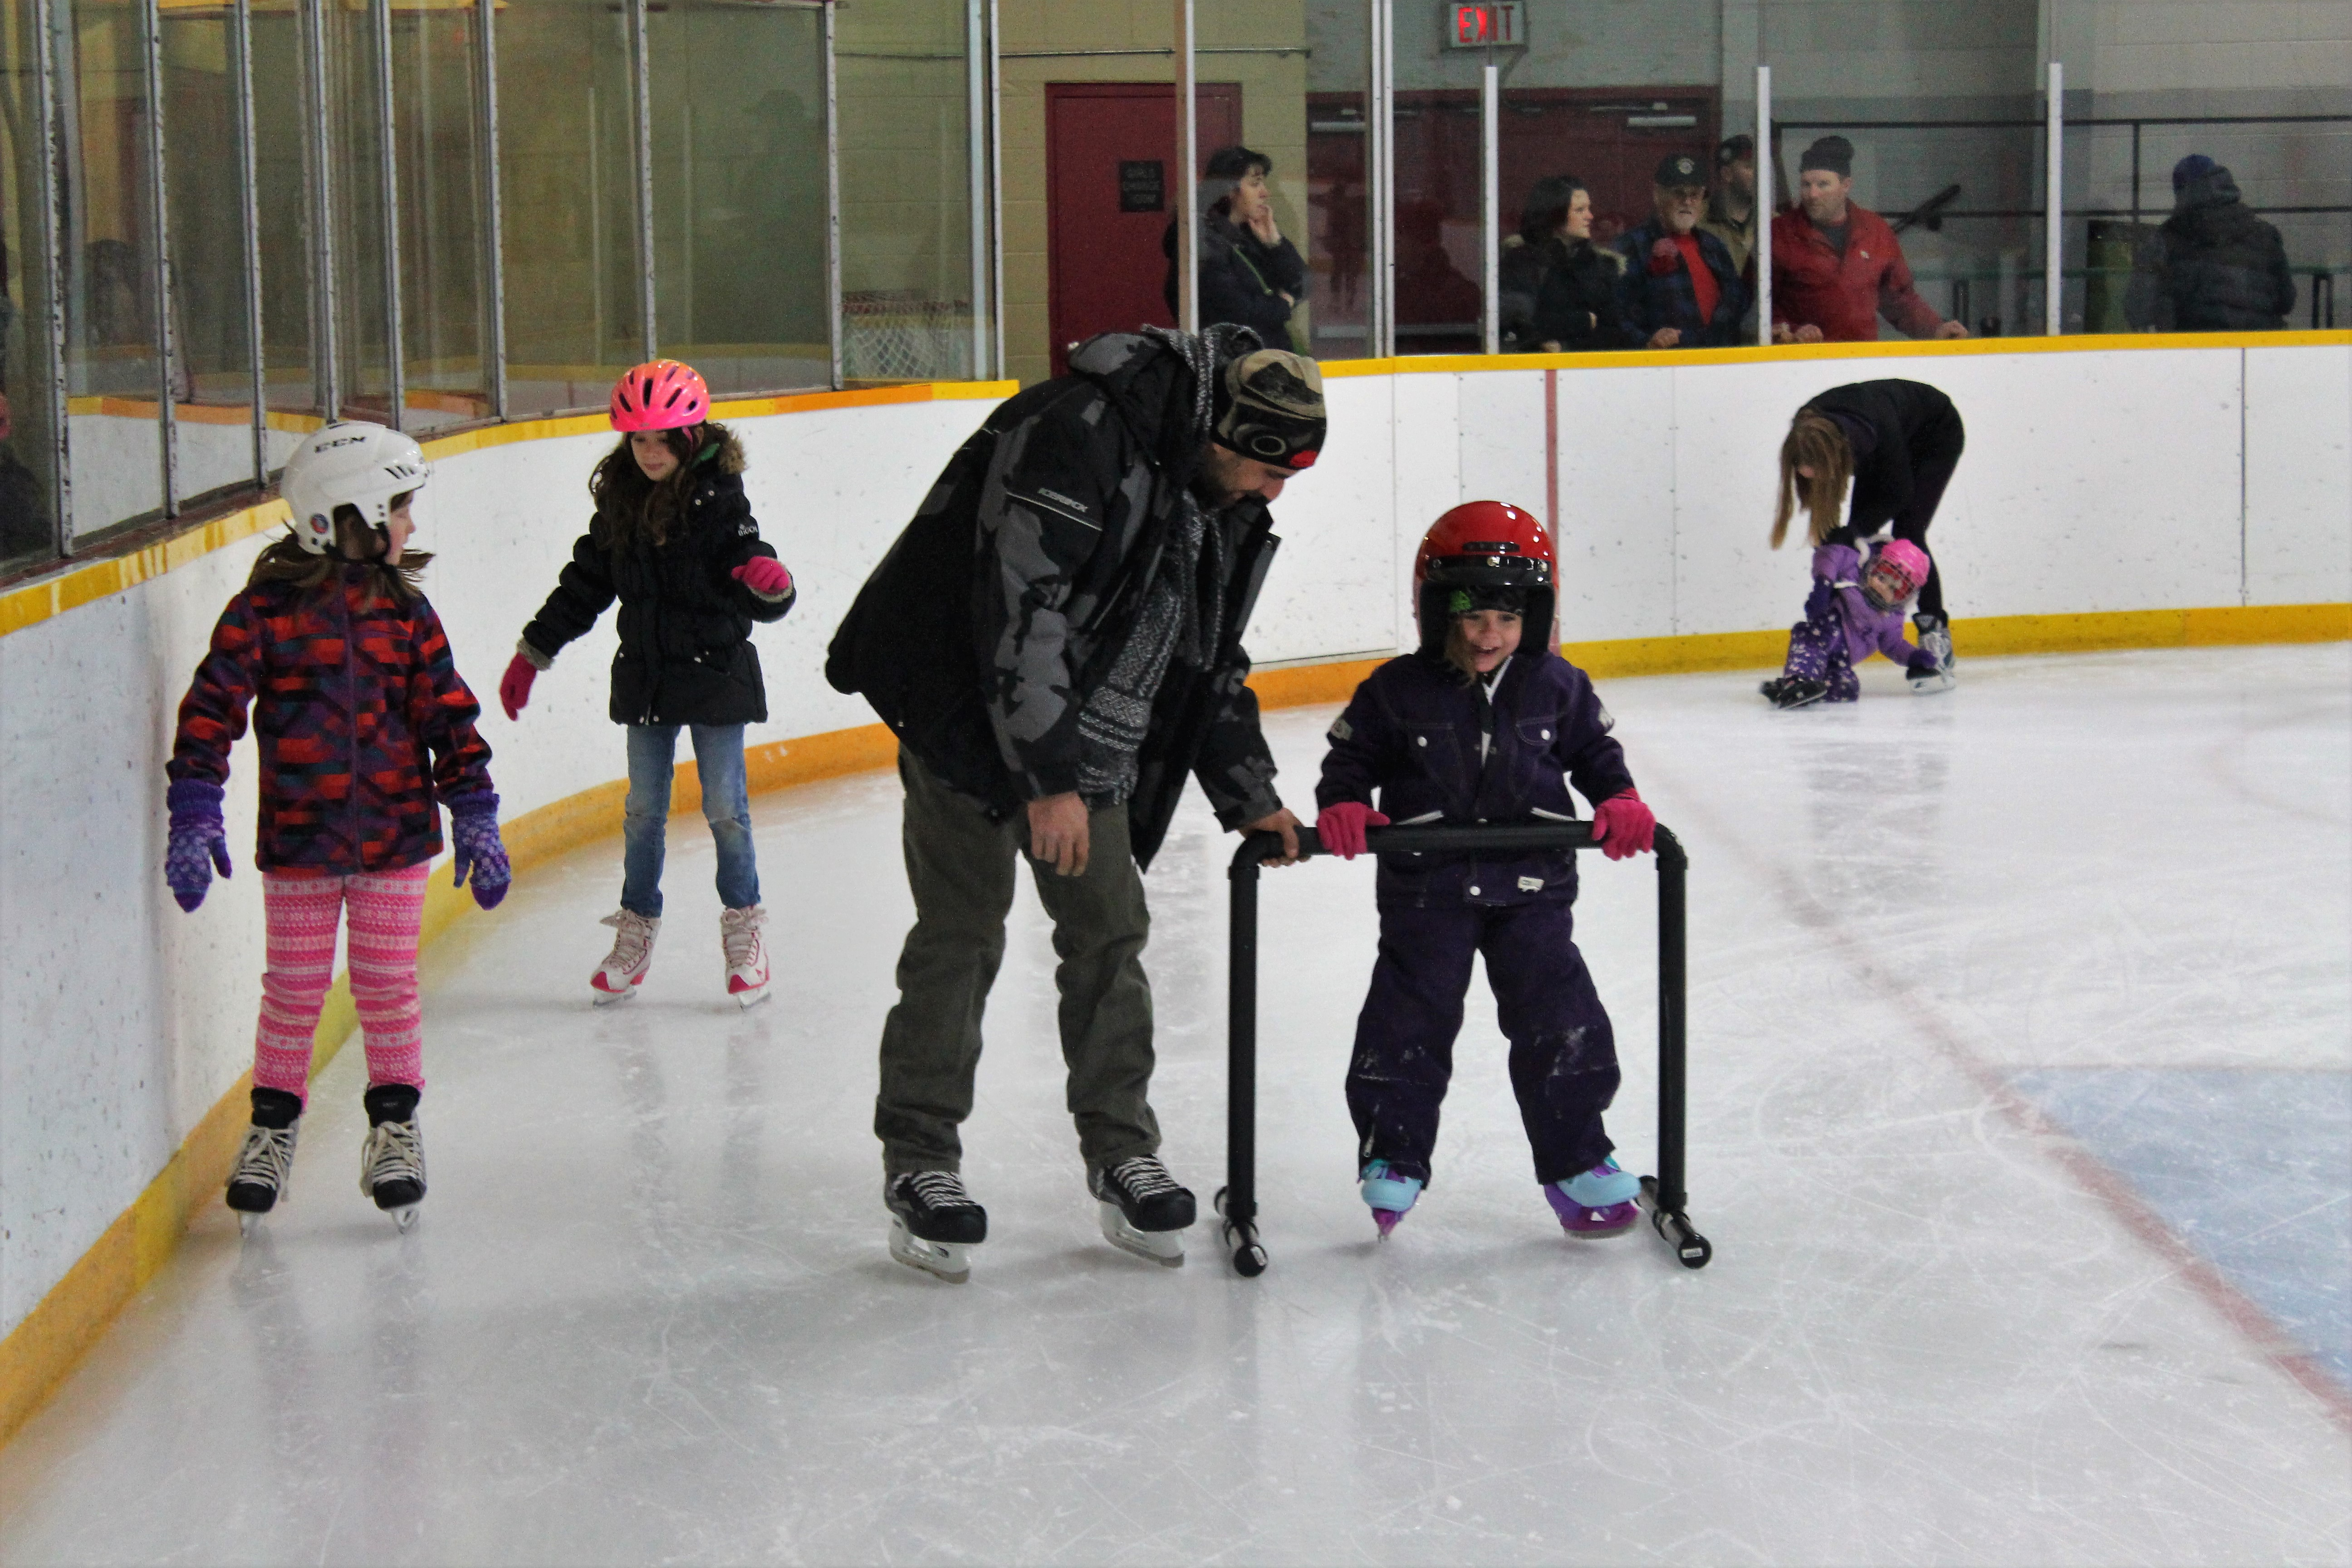 Hit the ice for free public skating at Brock arenas over March break